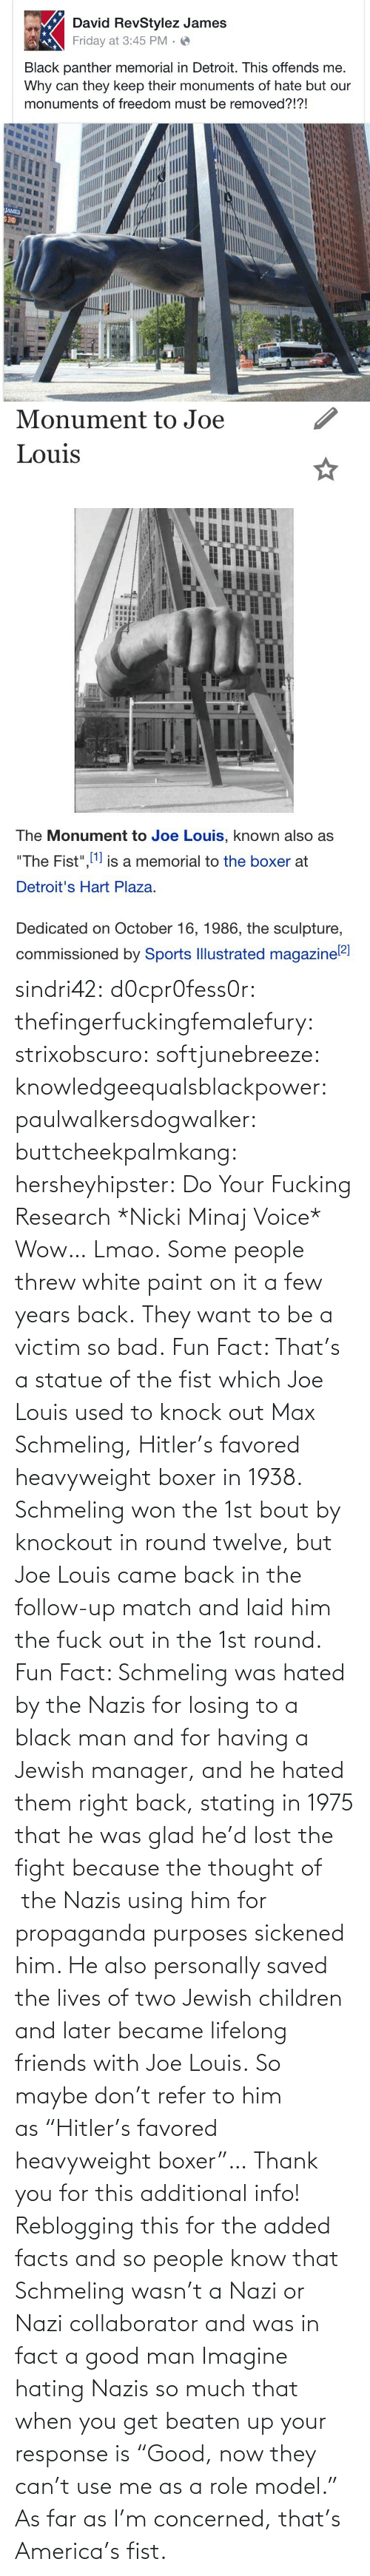 "Hating: sindri42:  d0cpr0fess0r:  thefingerfuckingfemalefury:  strixobscuro:  softjunebreeze:  knowledgeequalsblackpower:  paulwalkersdogwalker:   buttcheekpalmkang:   hersheyhipster:  Do Your Fucking Research *Nicki Minaj Voice*    Wow… Lmao.   Some people threw white paint on it a few years back.   They want to be a victim so bad.  Fun Fact: That's a statue of the fist which Joe Louis used to knock out Max Schmeling, Hitler's favored heavyweight boxer in 1938. Schmeling won the 1st bout by knockout in round twelve, but Joe Louis came back in the follow-up match and laid him the fuck out in the 1st round.  Fun Fact: Schmeling was hated by the Nazis for losing to a black man and for having a Jewish manager, and he hated them right back, stating in 1975 that he was glad he'd lost the fight because the thought of  the Nazis using him for propaganda purposes sickened him. He also personally saved the lives of two Jewish children and later became lifelong friends with Joe Louis. So maybe don't refer to him as ""Hitler's favored heavyweight boxer""…  Thank you for this additional info! Reblogging this for the added facts and so people know that Schmeling wasn't a Nazi or Nazi collaborator and was in fact a good man   Imagine hating Nazis so much that when you get beaten up your response is ""Good, now they can't use me as a role model.""  As far as I'm concerned, that's America's fist."